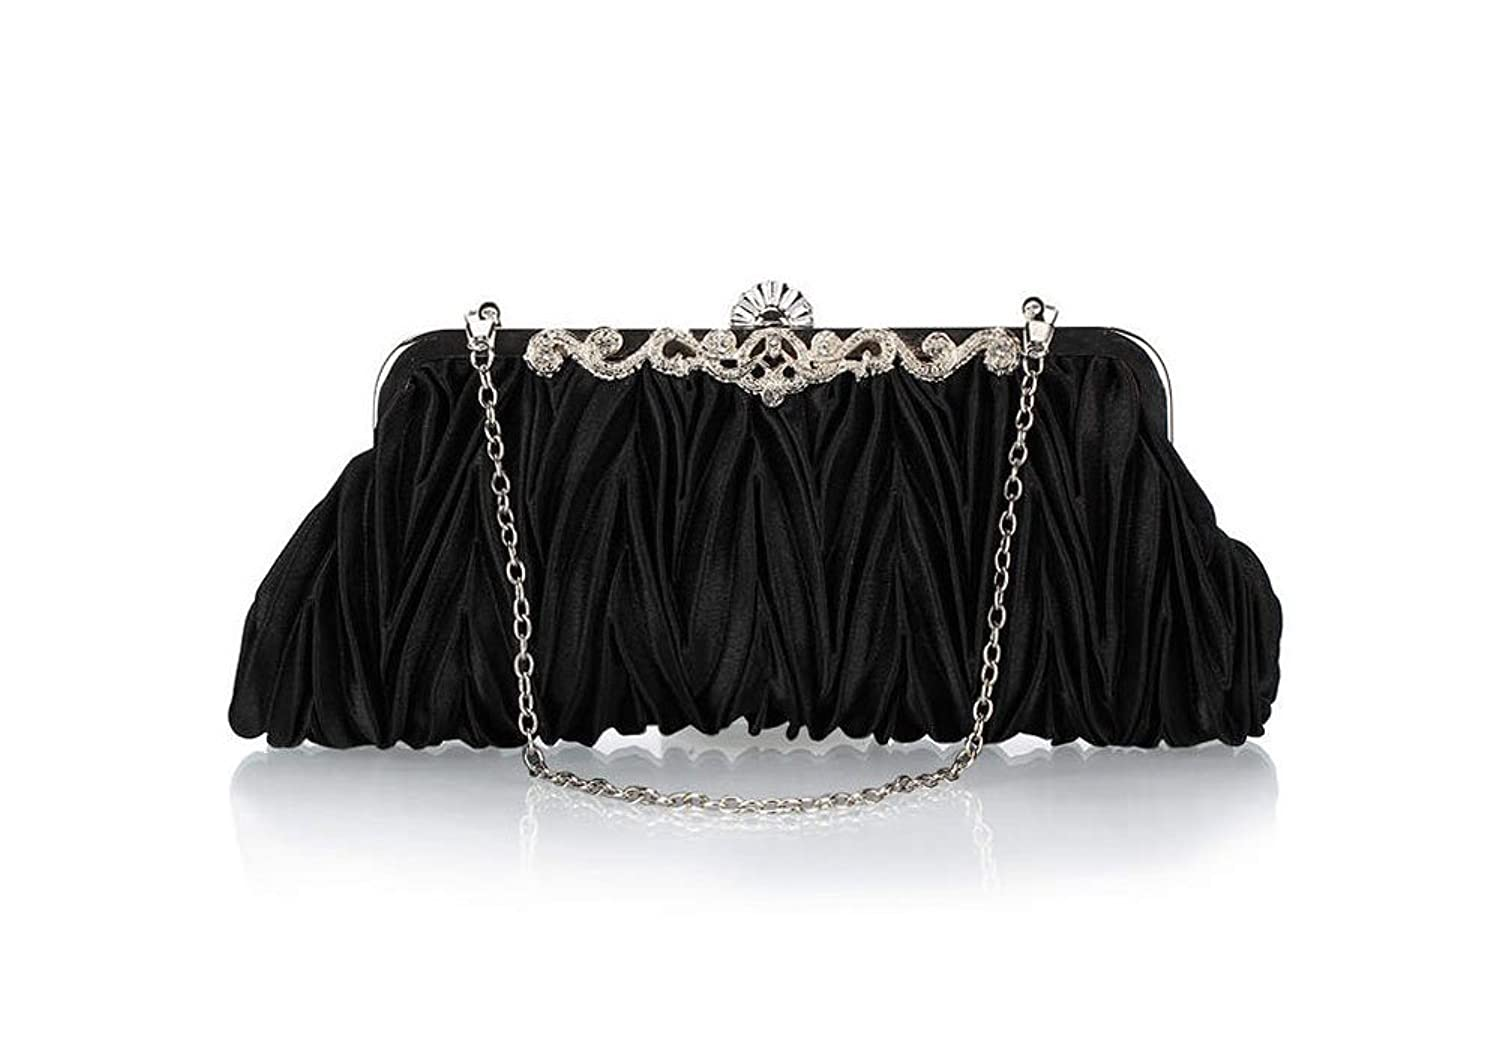 1930s Handbags and Purses Fashion Bundle Monster Womens Vintage Satin Envelope Evening Cocktail Party Handbag $13.98 AT vintagedancer.com